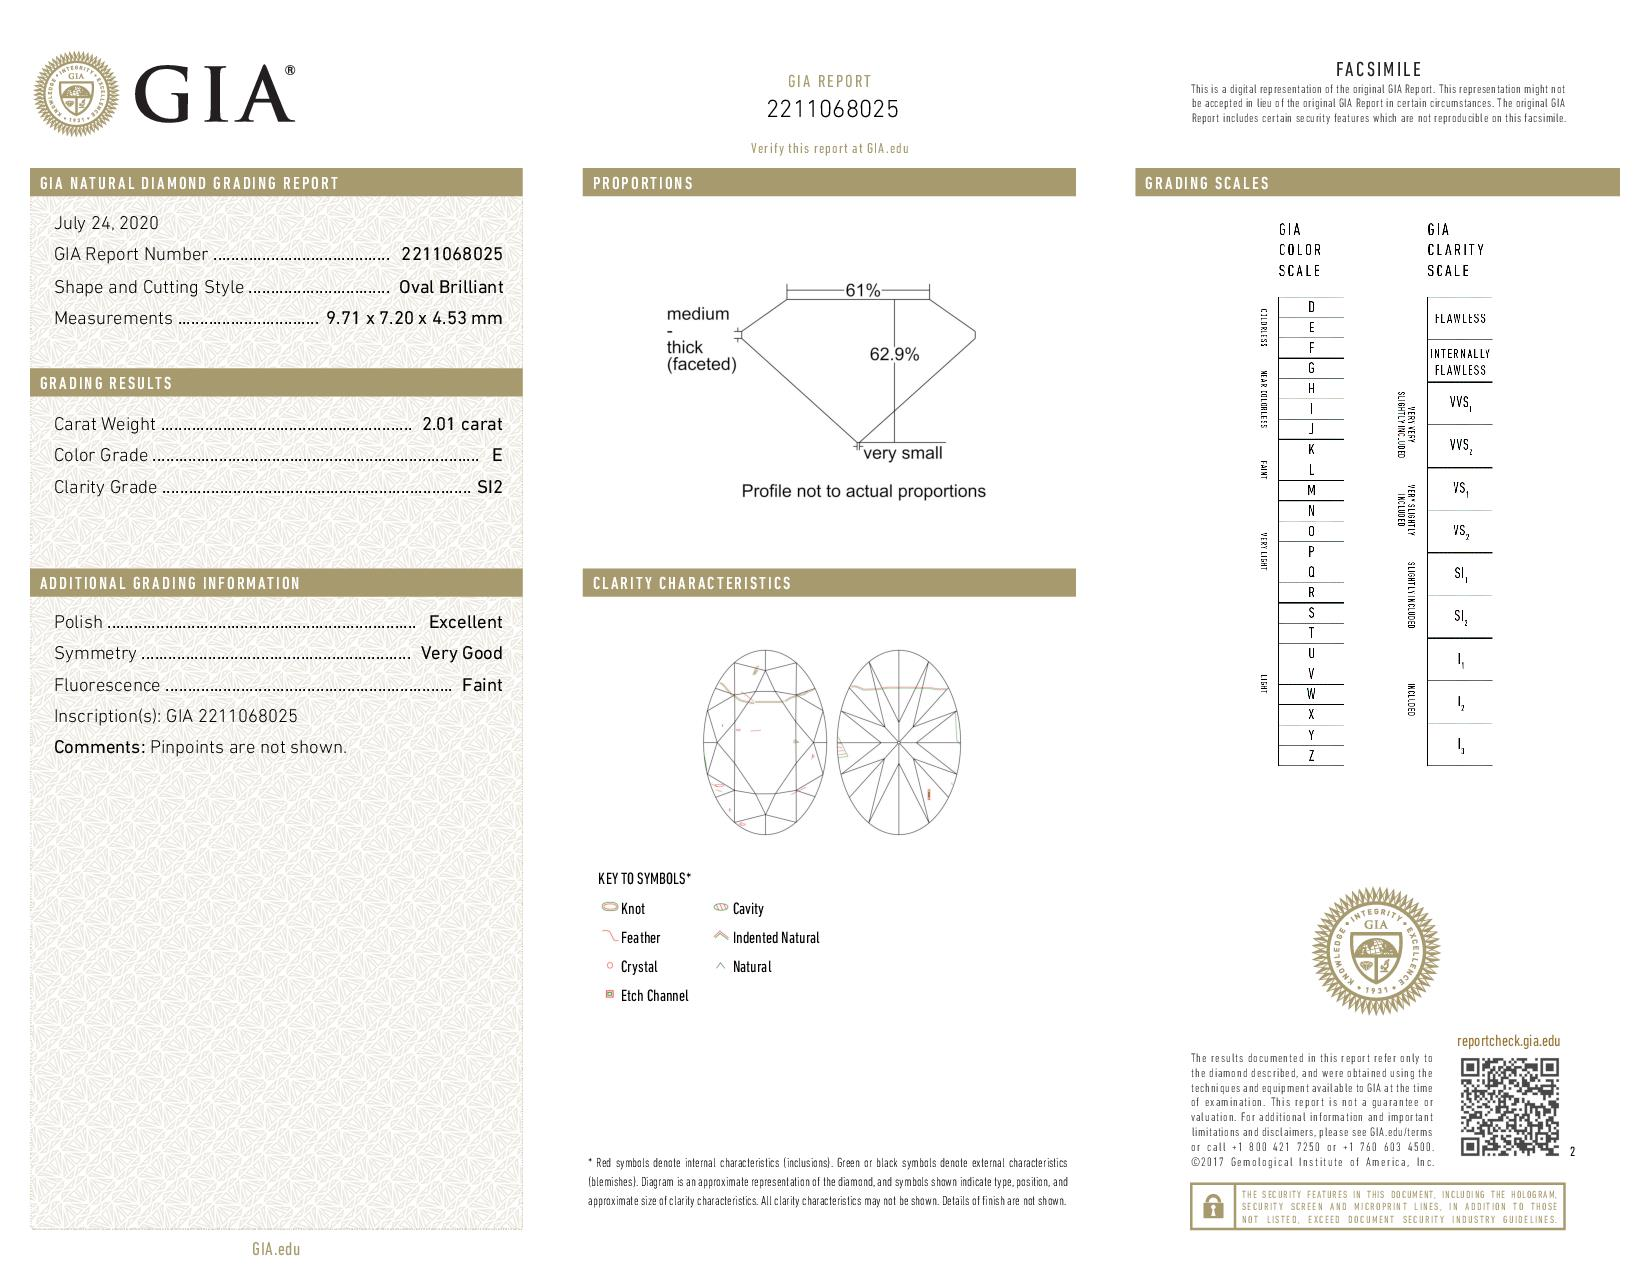 This is a 2.01 carat oval shape, E color, SI2 clarity natural diamond accompanied by a GIA grading report.